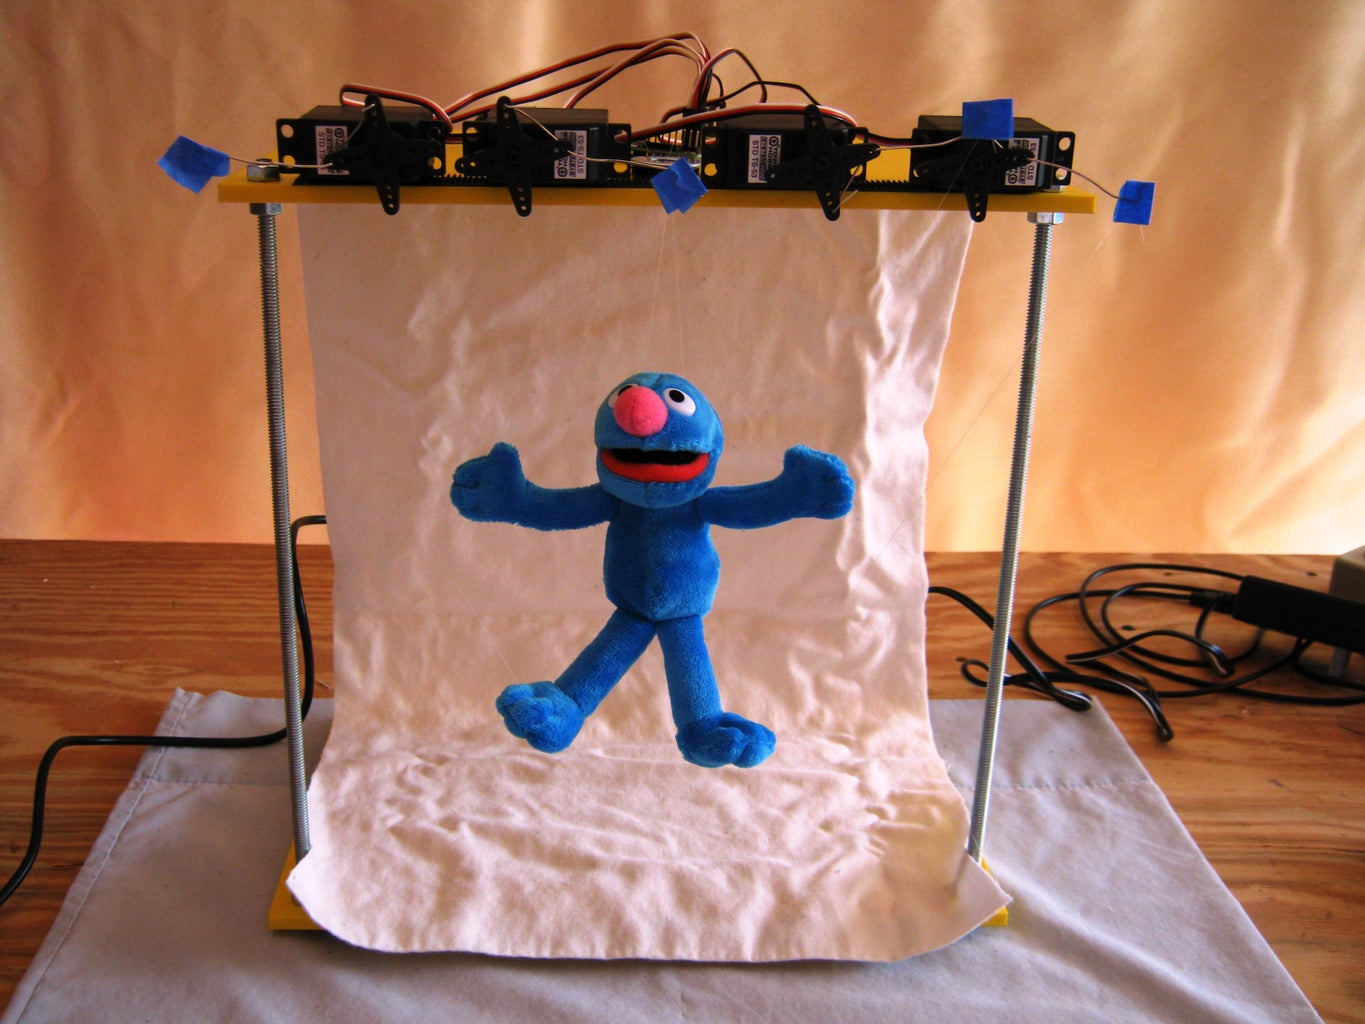 Groovin' Grover: a Microcontroller-based Marionette